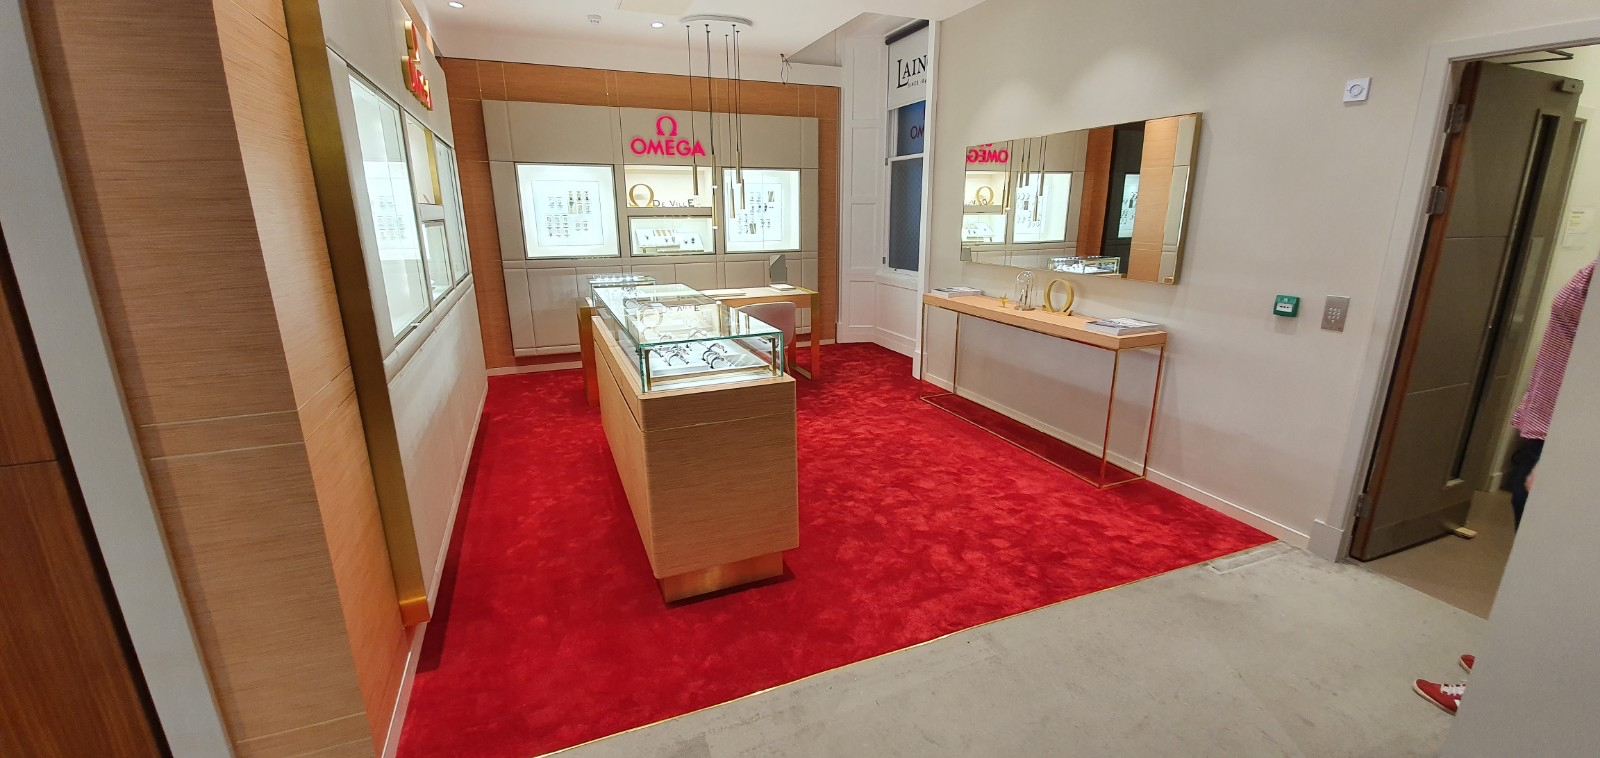 Omega jewellers traditional carpet